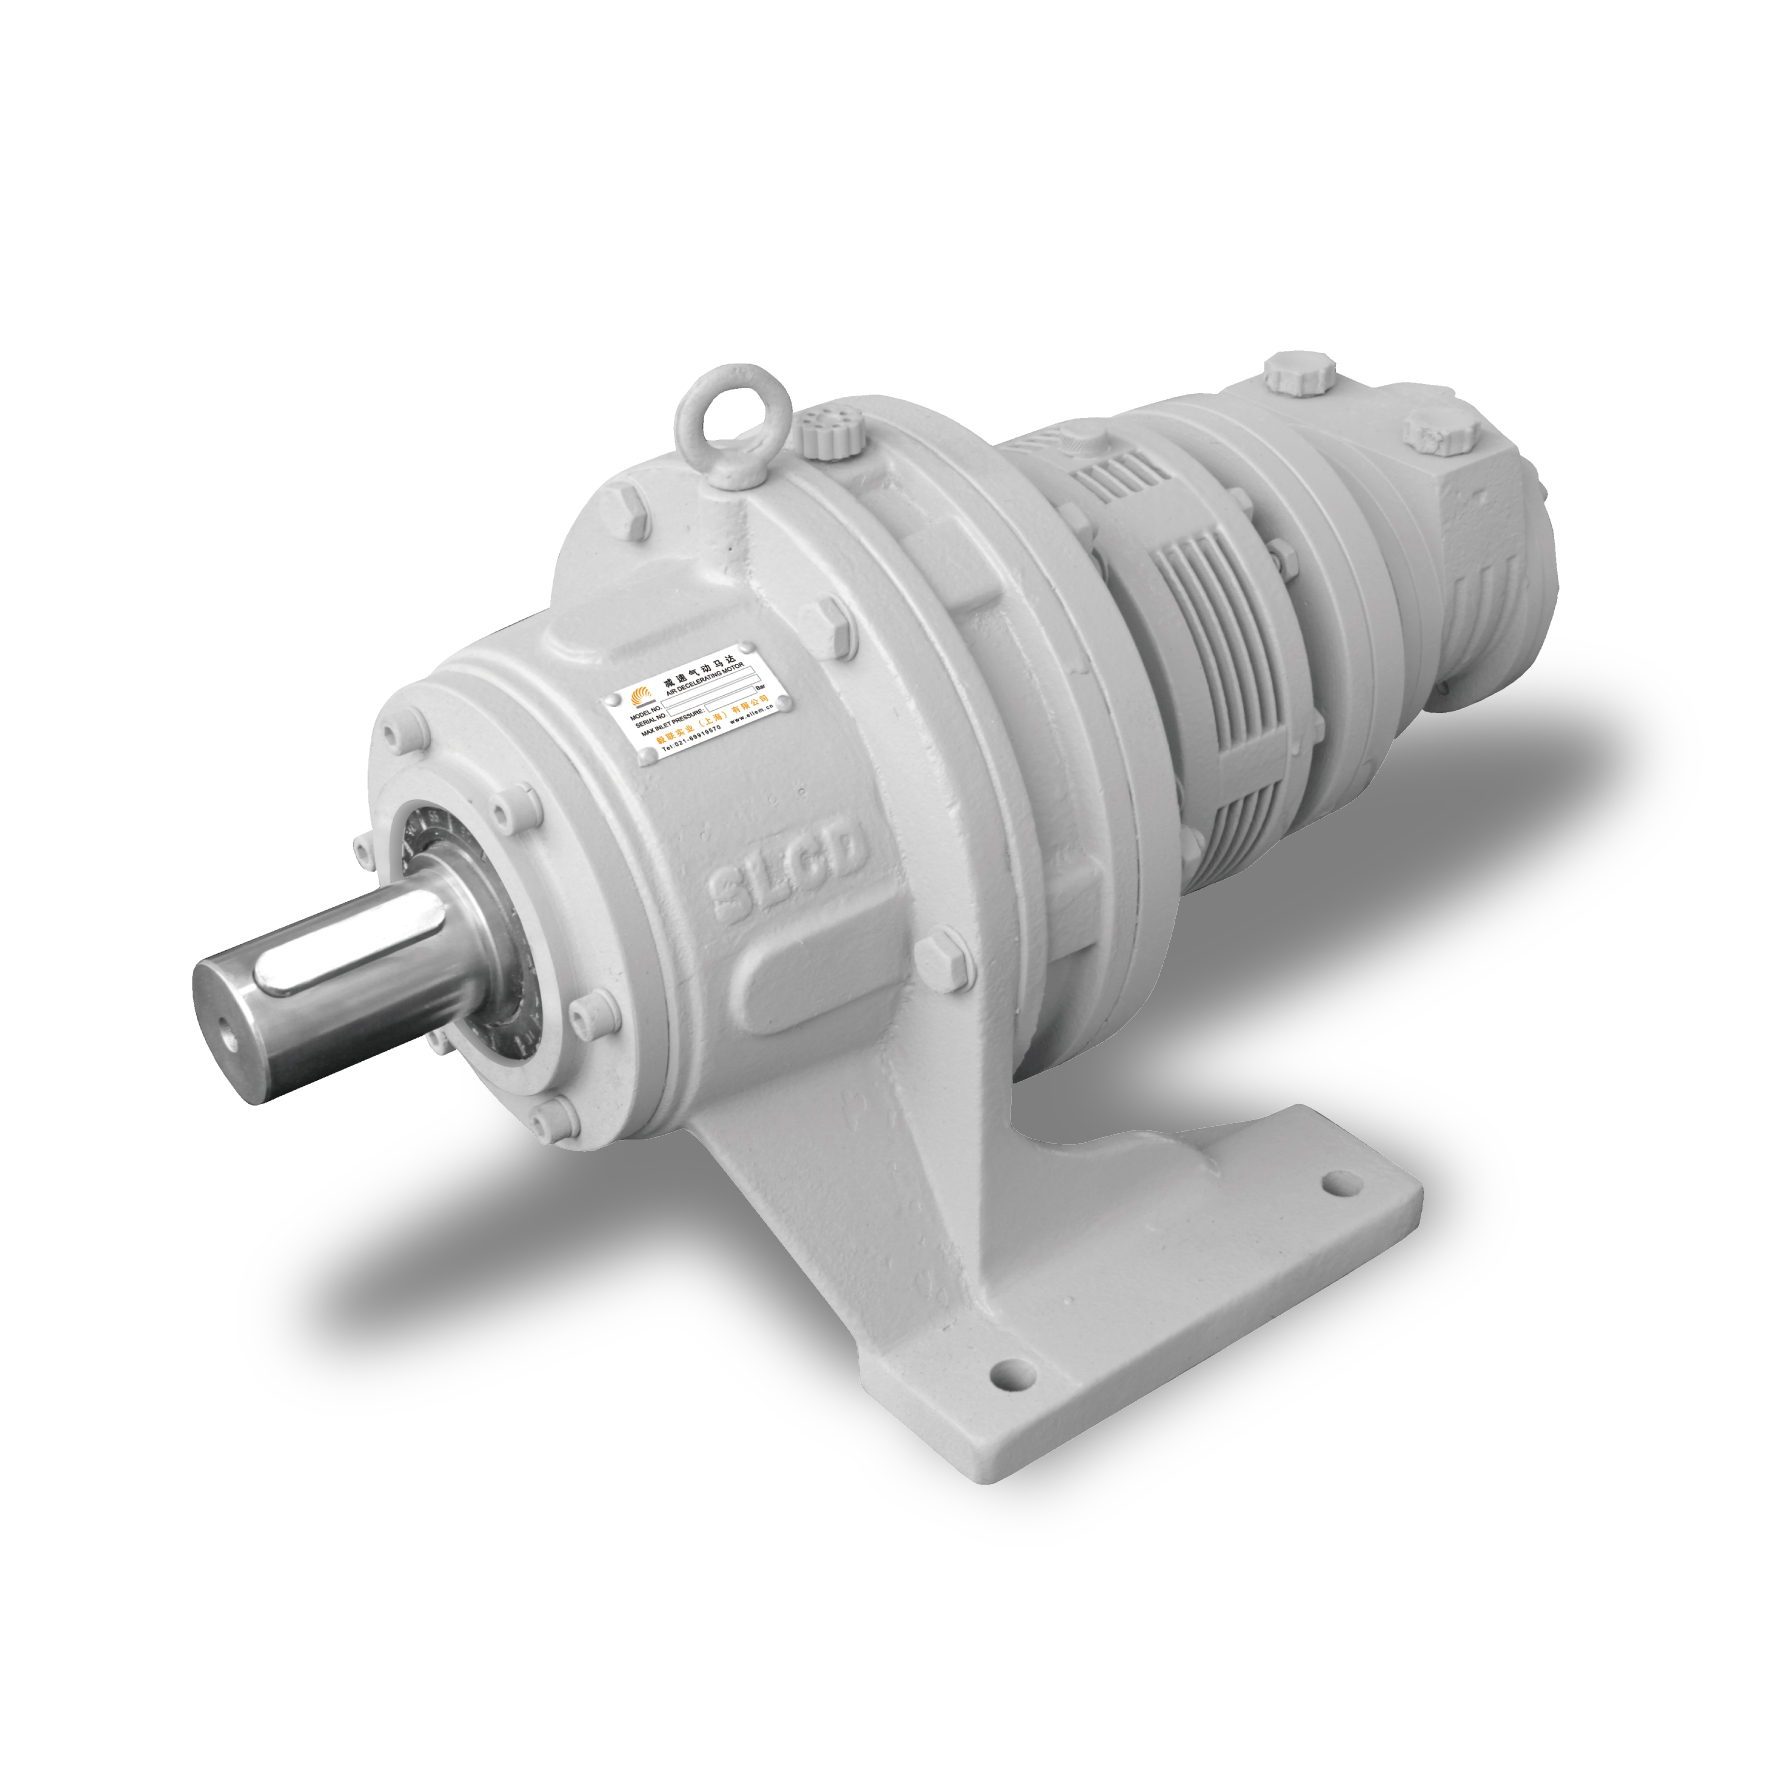 M-C SERIES CYCLOID GEAR MOTOR